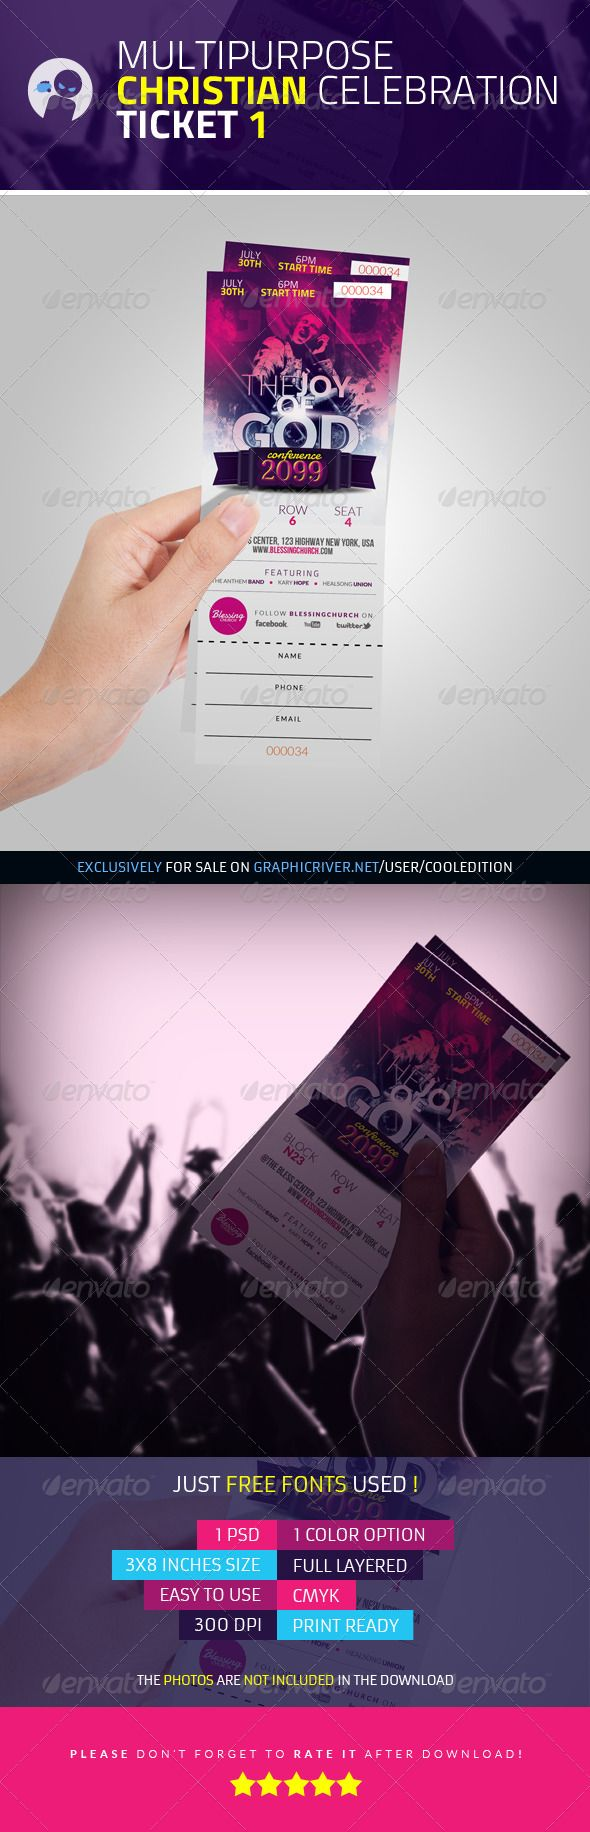 Multipurpose Christian Celebration Ticket 1 — Photoshop PSD #entry #christian • Available here → https://graphicriver.net/item/multipurpose-christian-celebration-ticket-1/3864897?ref=pxcr